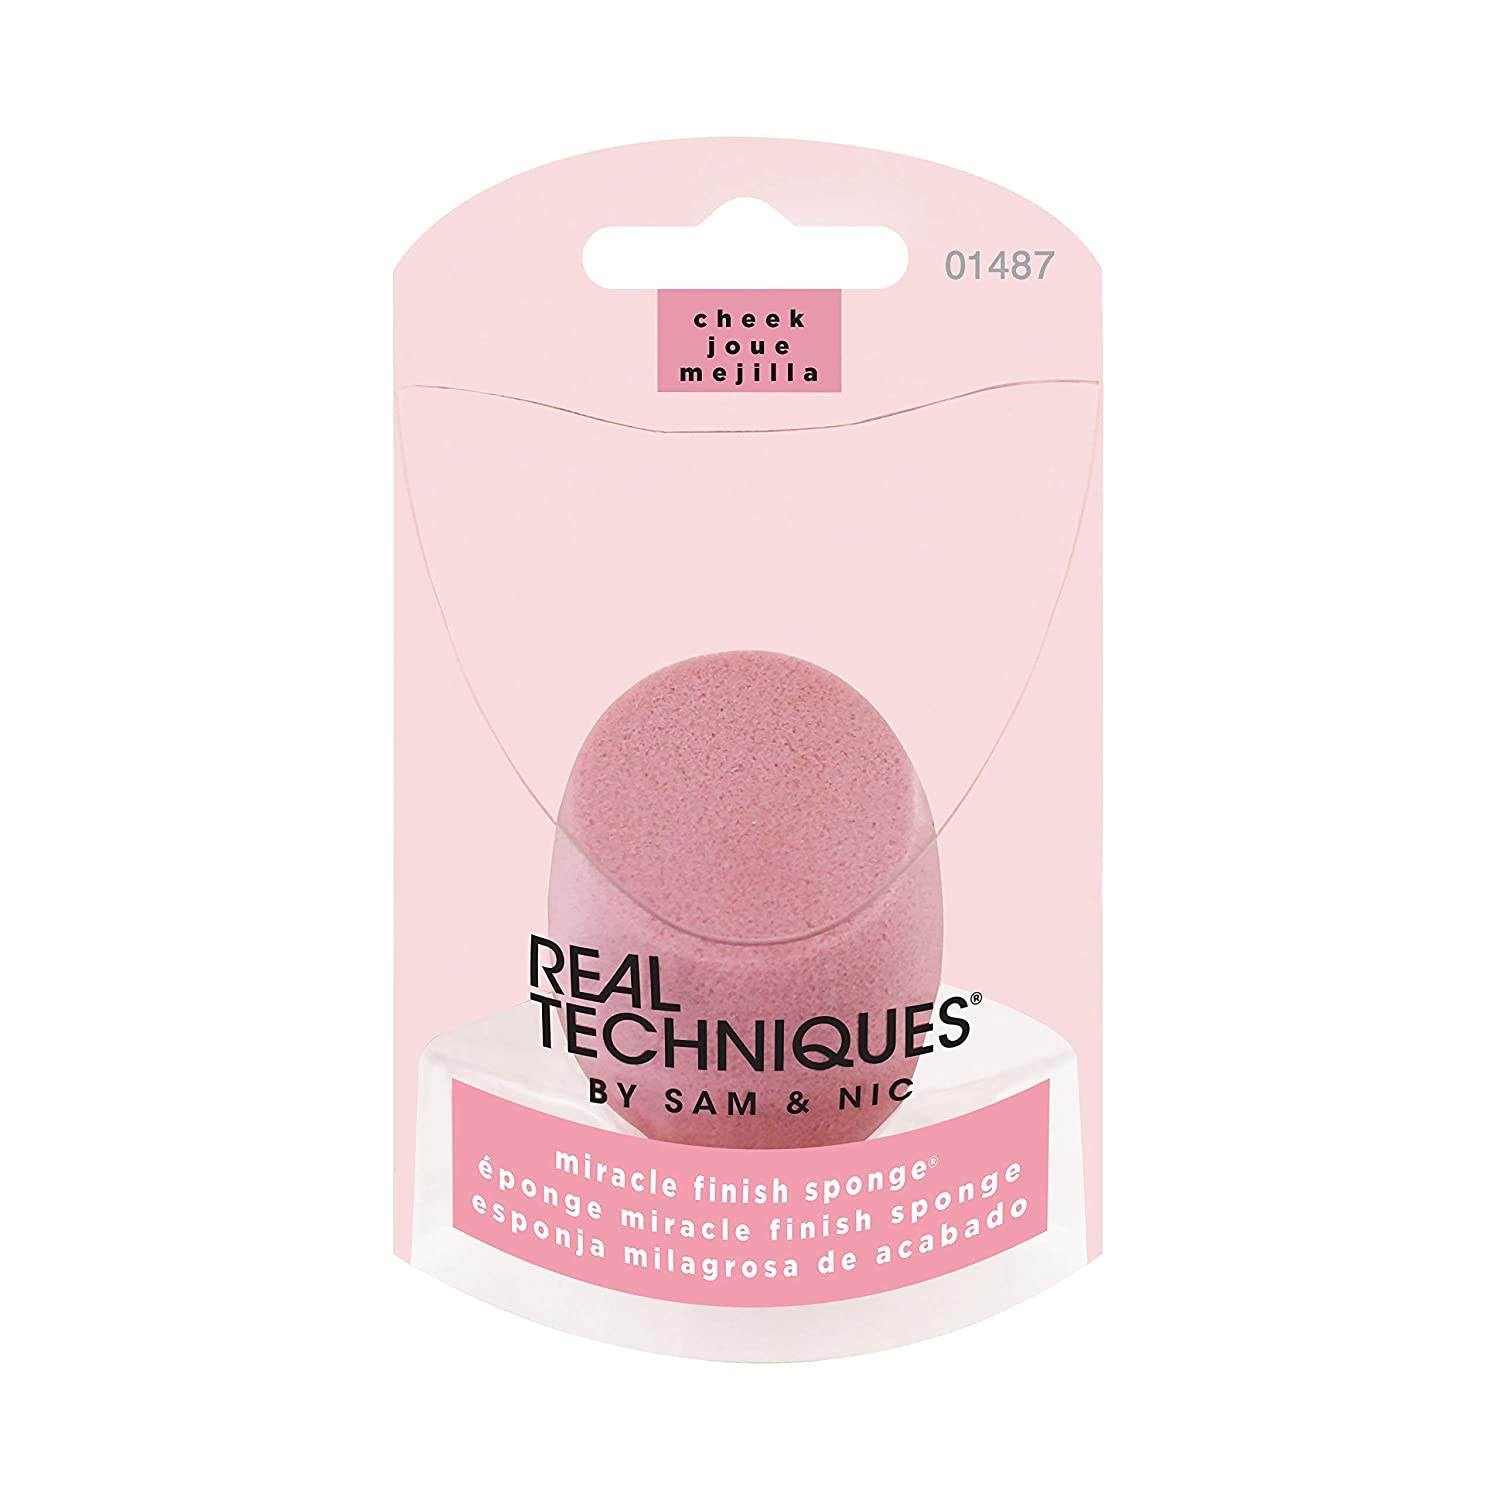 Real Techniques Cruelty Free Miracle Finish Sponge (Pack of 1) for a Natural Look, Ideal for Cream, Pressed Powder, & Liquid Blush, Latex Free (Packaging May Vary)